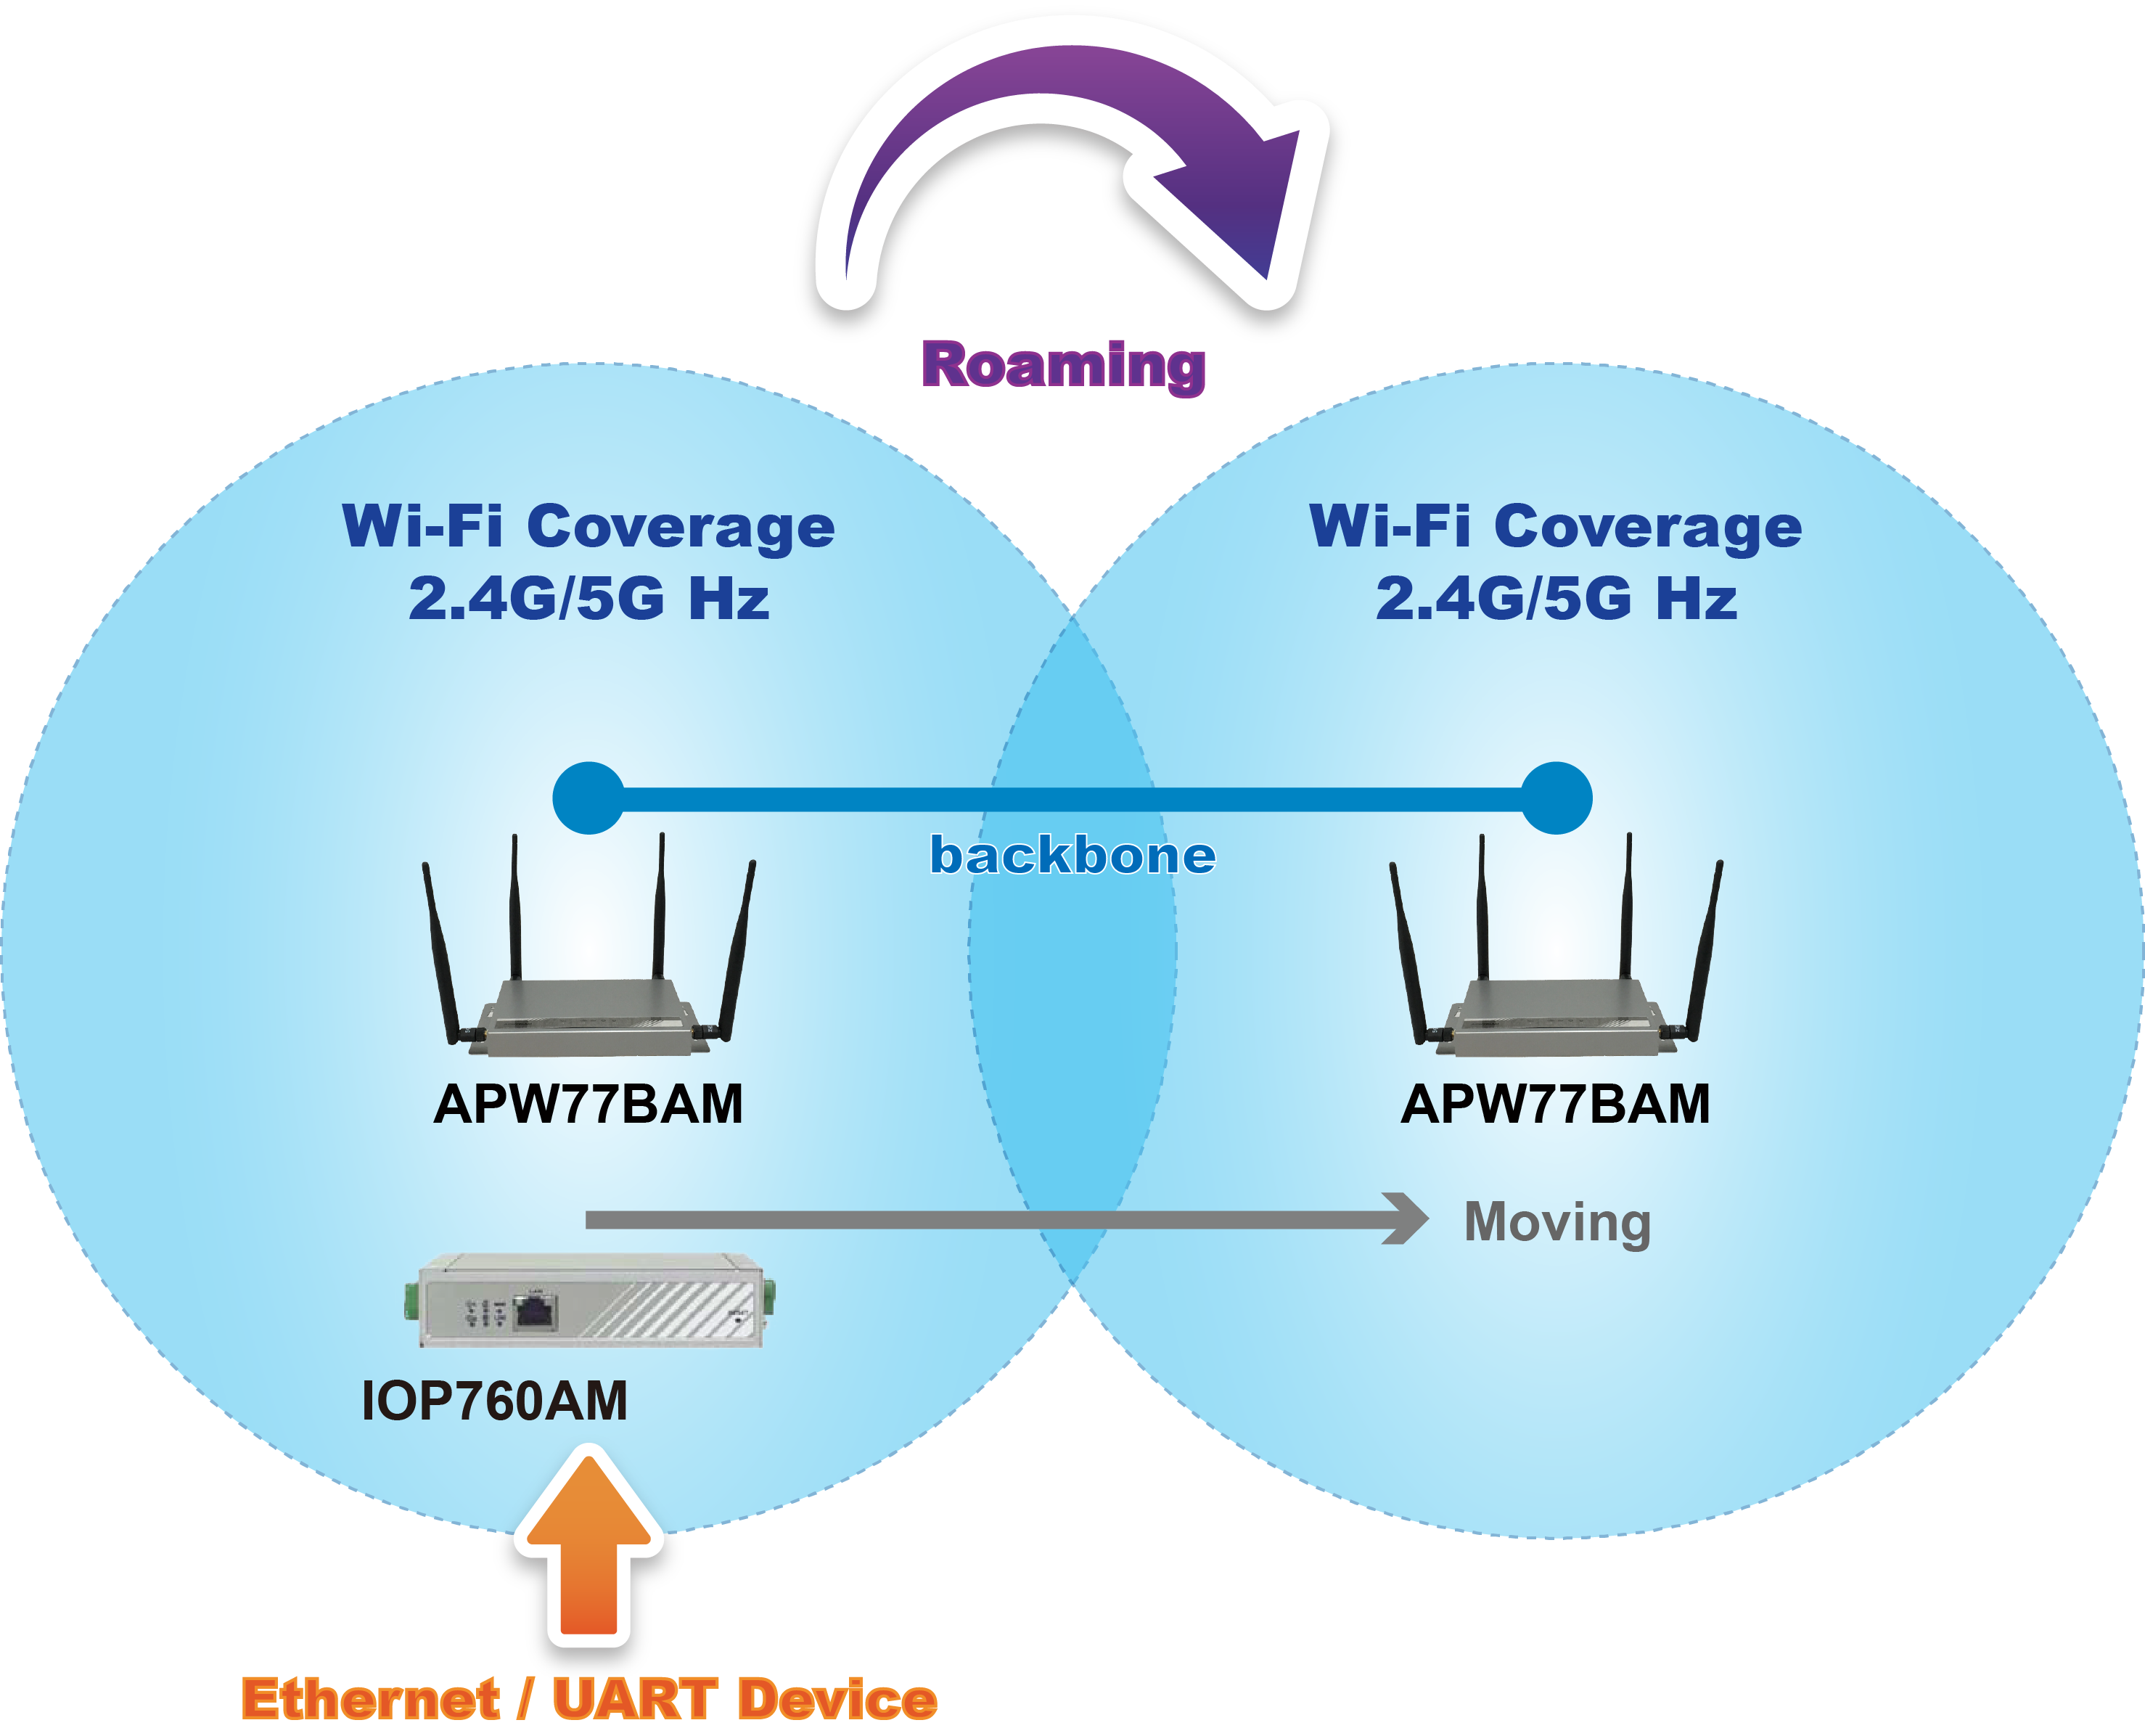 IOP760AM Ethernet/UART to Wi-Fi Converter